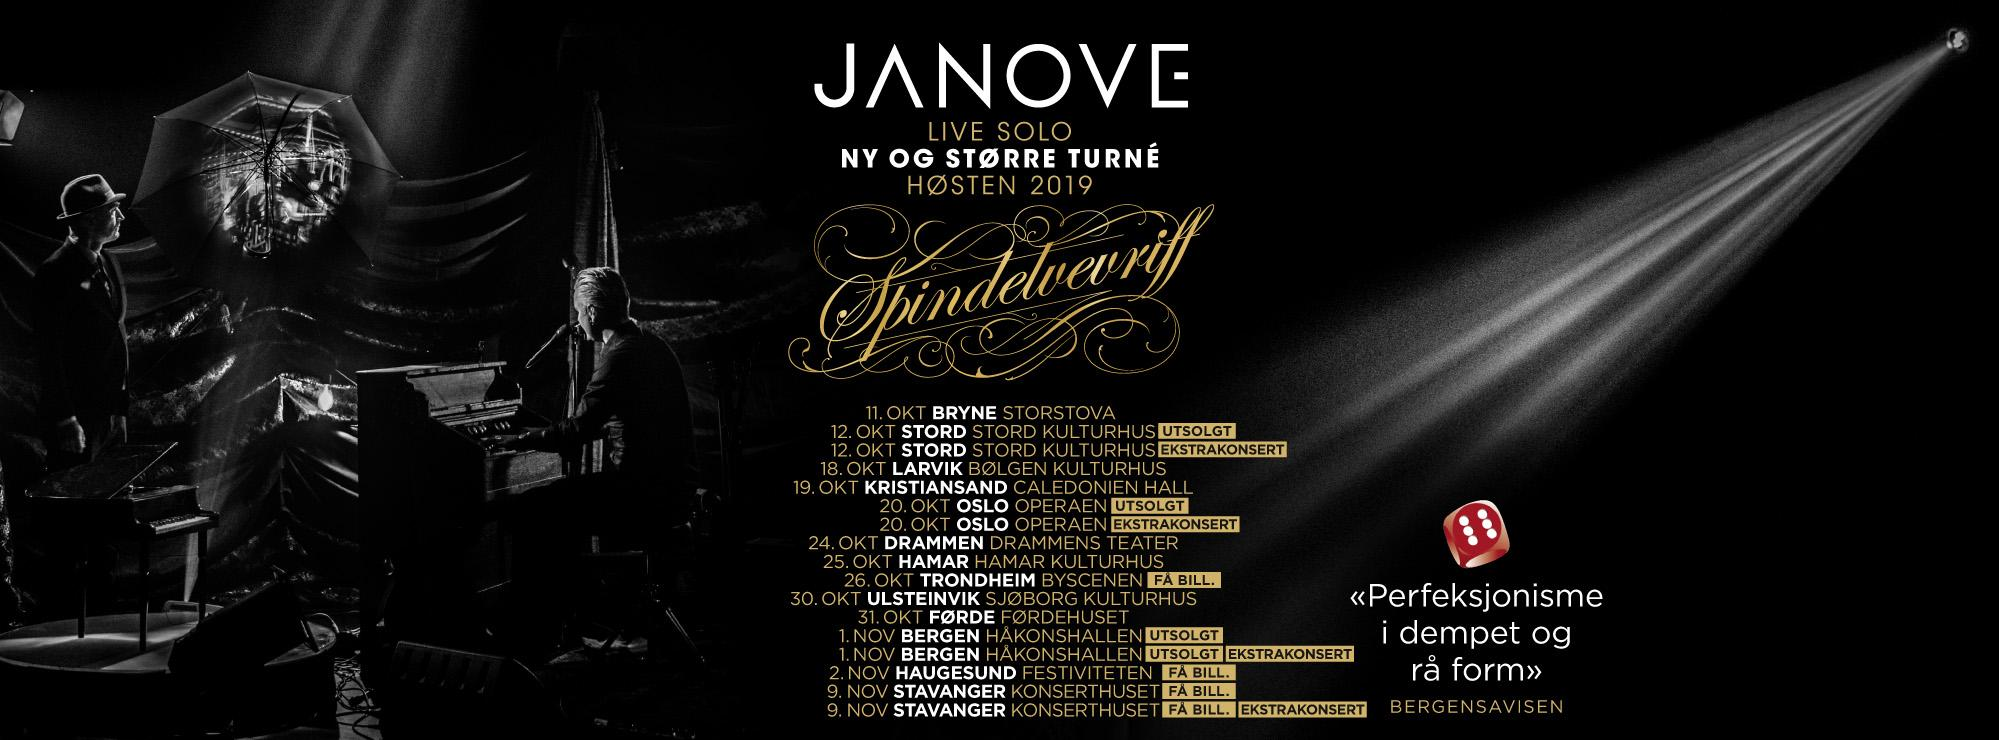 Spindelveviriff Tour 2019